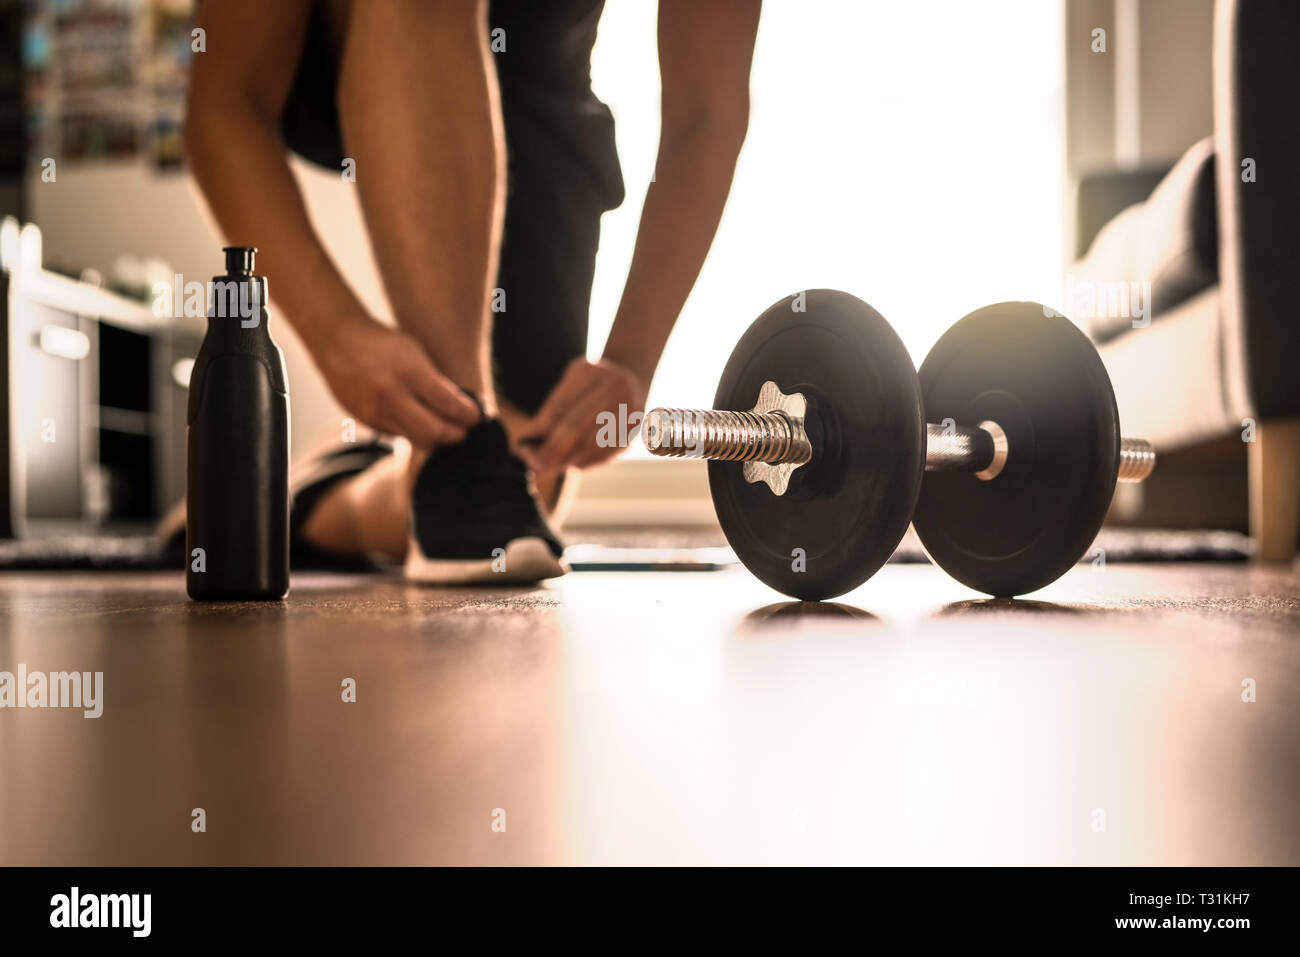 Morning Workout Routine In Home Gym Fitness Motivation And Muscle Training Concept Man In Sneakers Tying Shoelaces In Sunlight Stock Photo Alamy